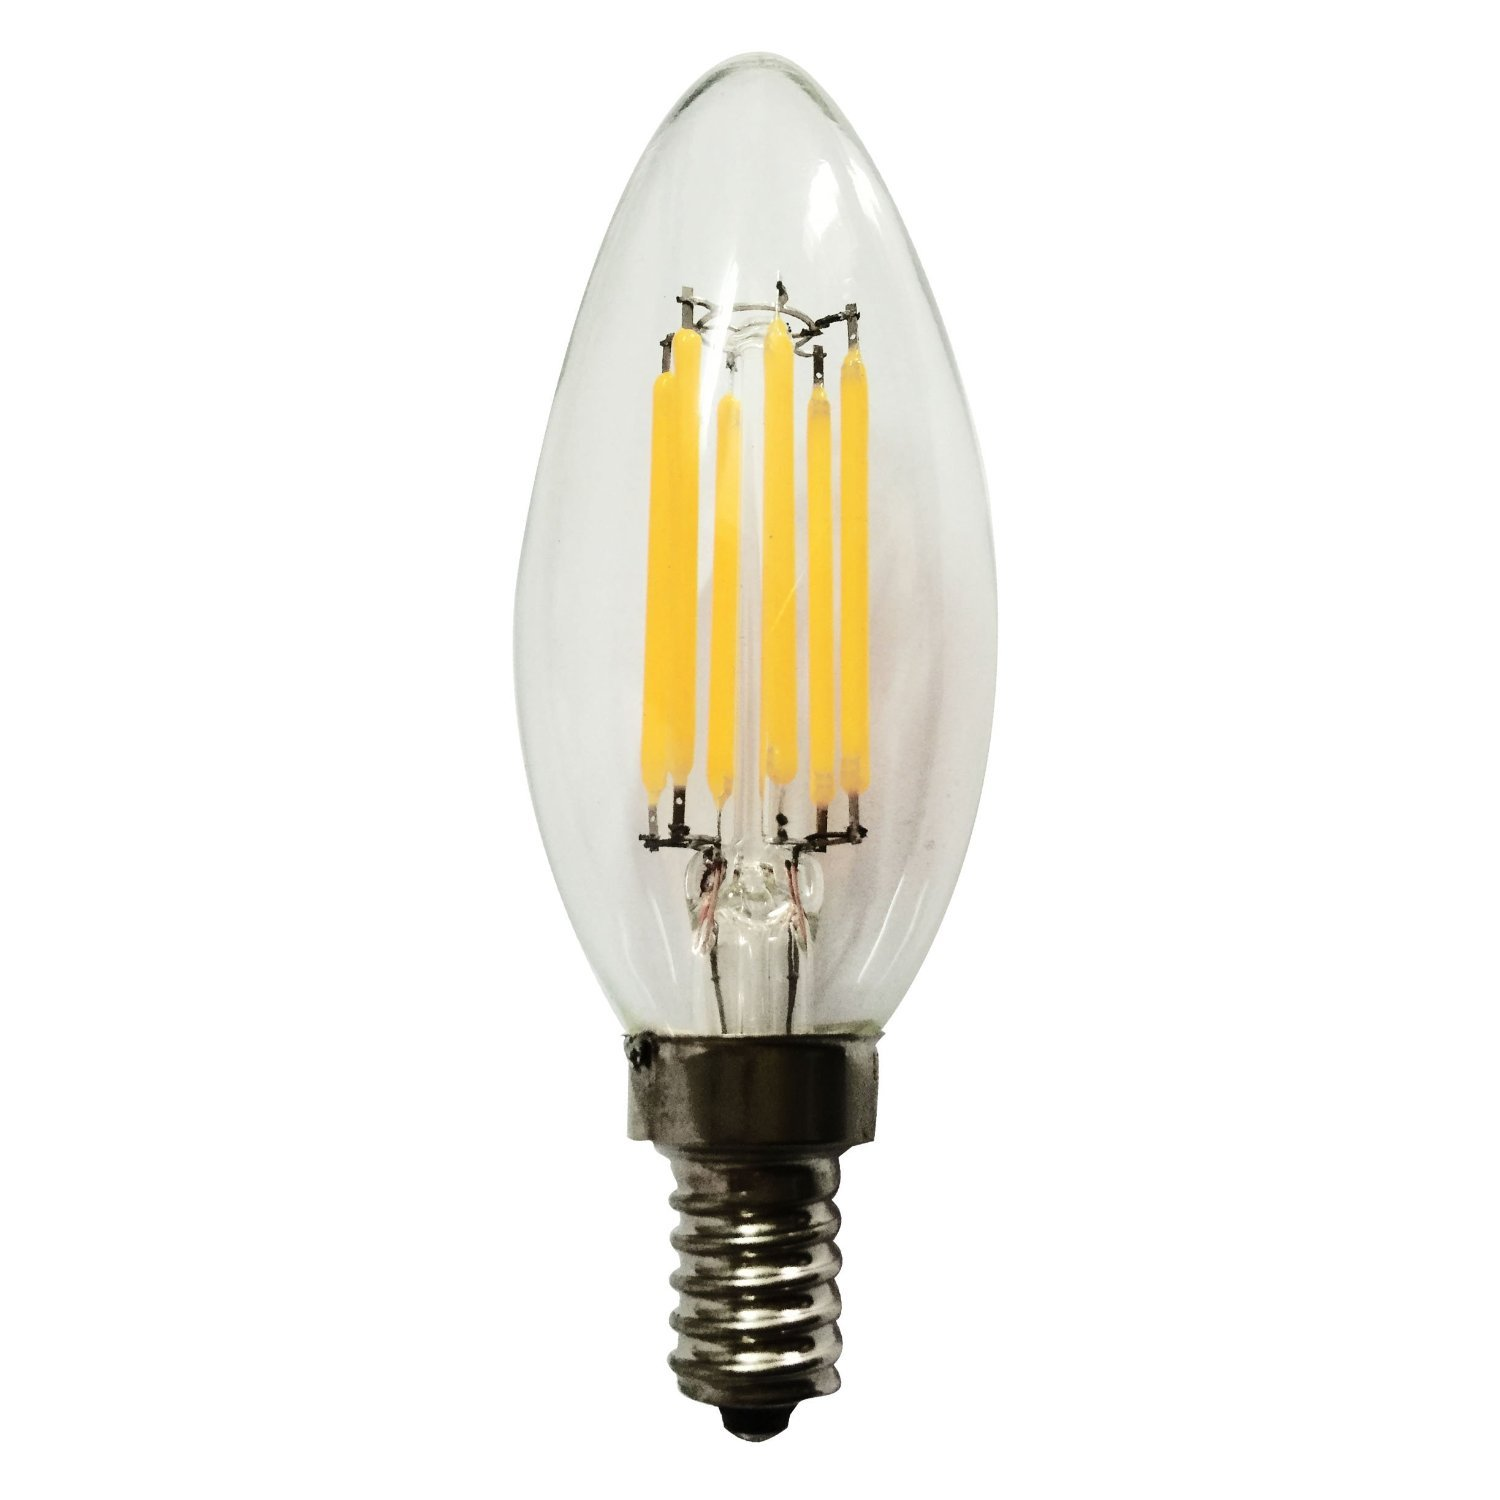 Vstar C35 LED Candelabra Filament Bulb 6w Candle Light Lamp With E12 Base,Warm White 2700k,600lm,120V,Dimmable and Equivalent to 50w Incandescent,Pack of 6